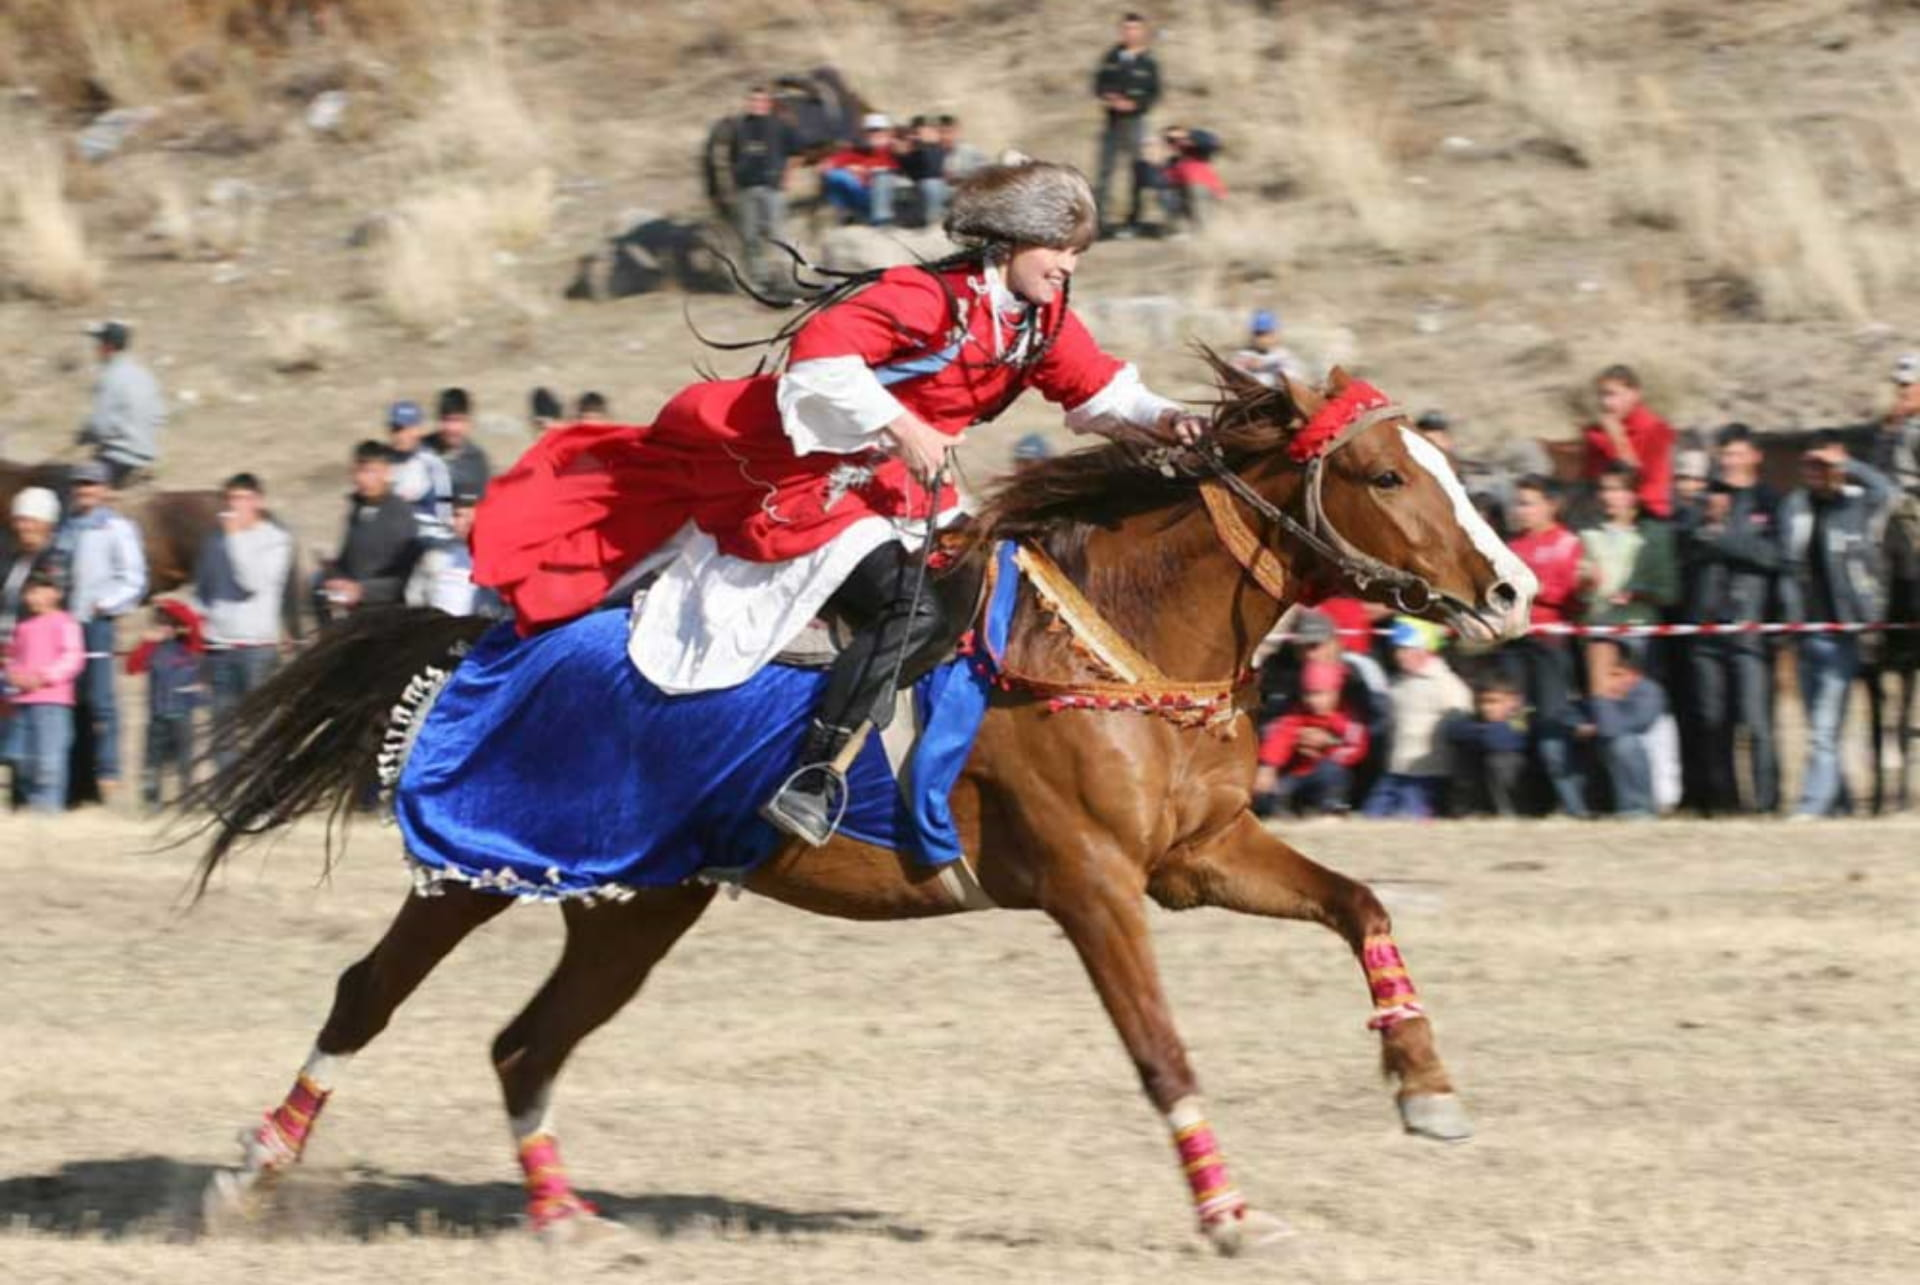 Kyz kuumai, or Kyz koo, is an equestrian game among the Turkic people, such as the Azerbaijanis, Kazakhs and Kyrgyz.